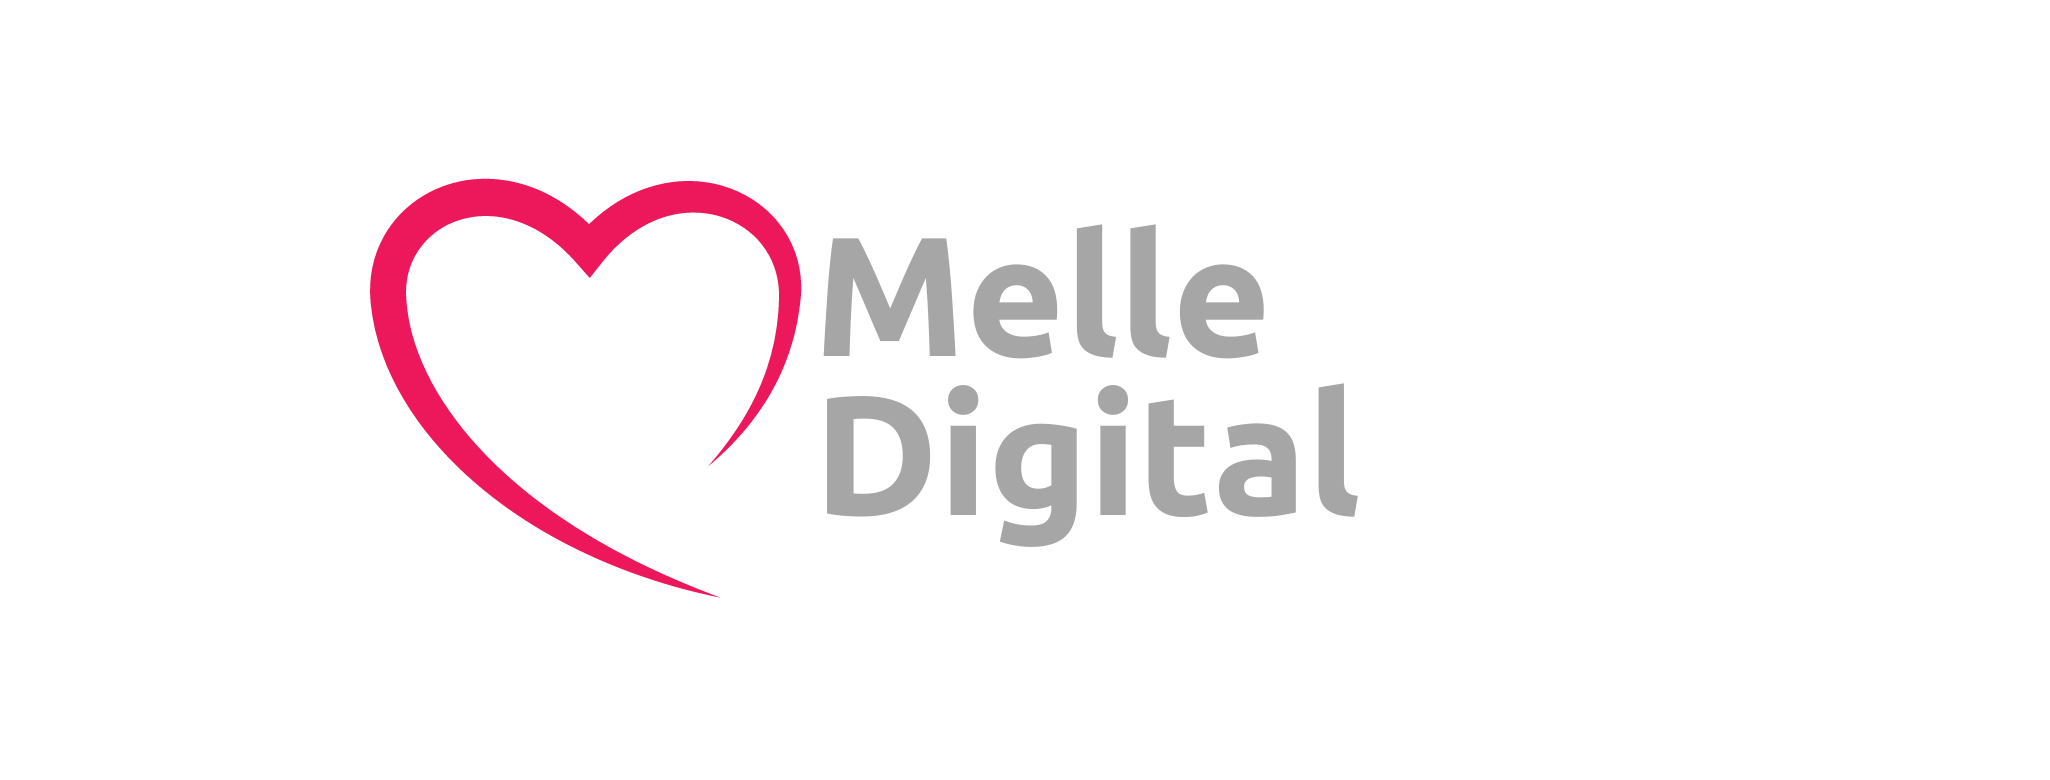 Melle Digital